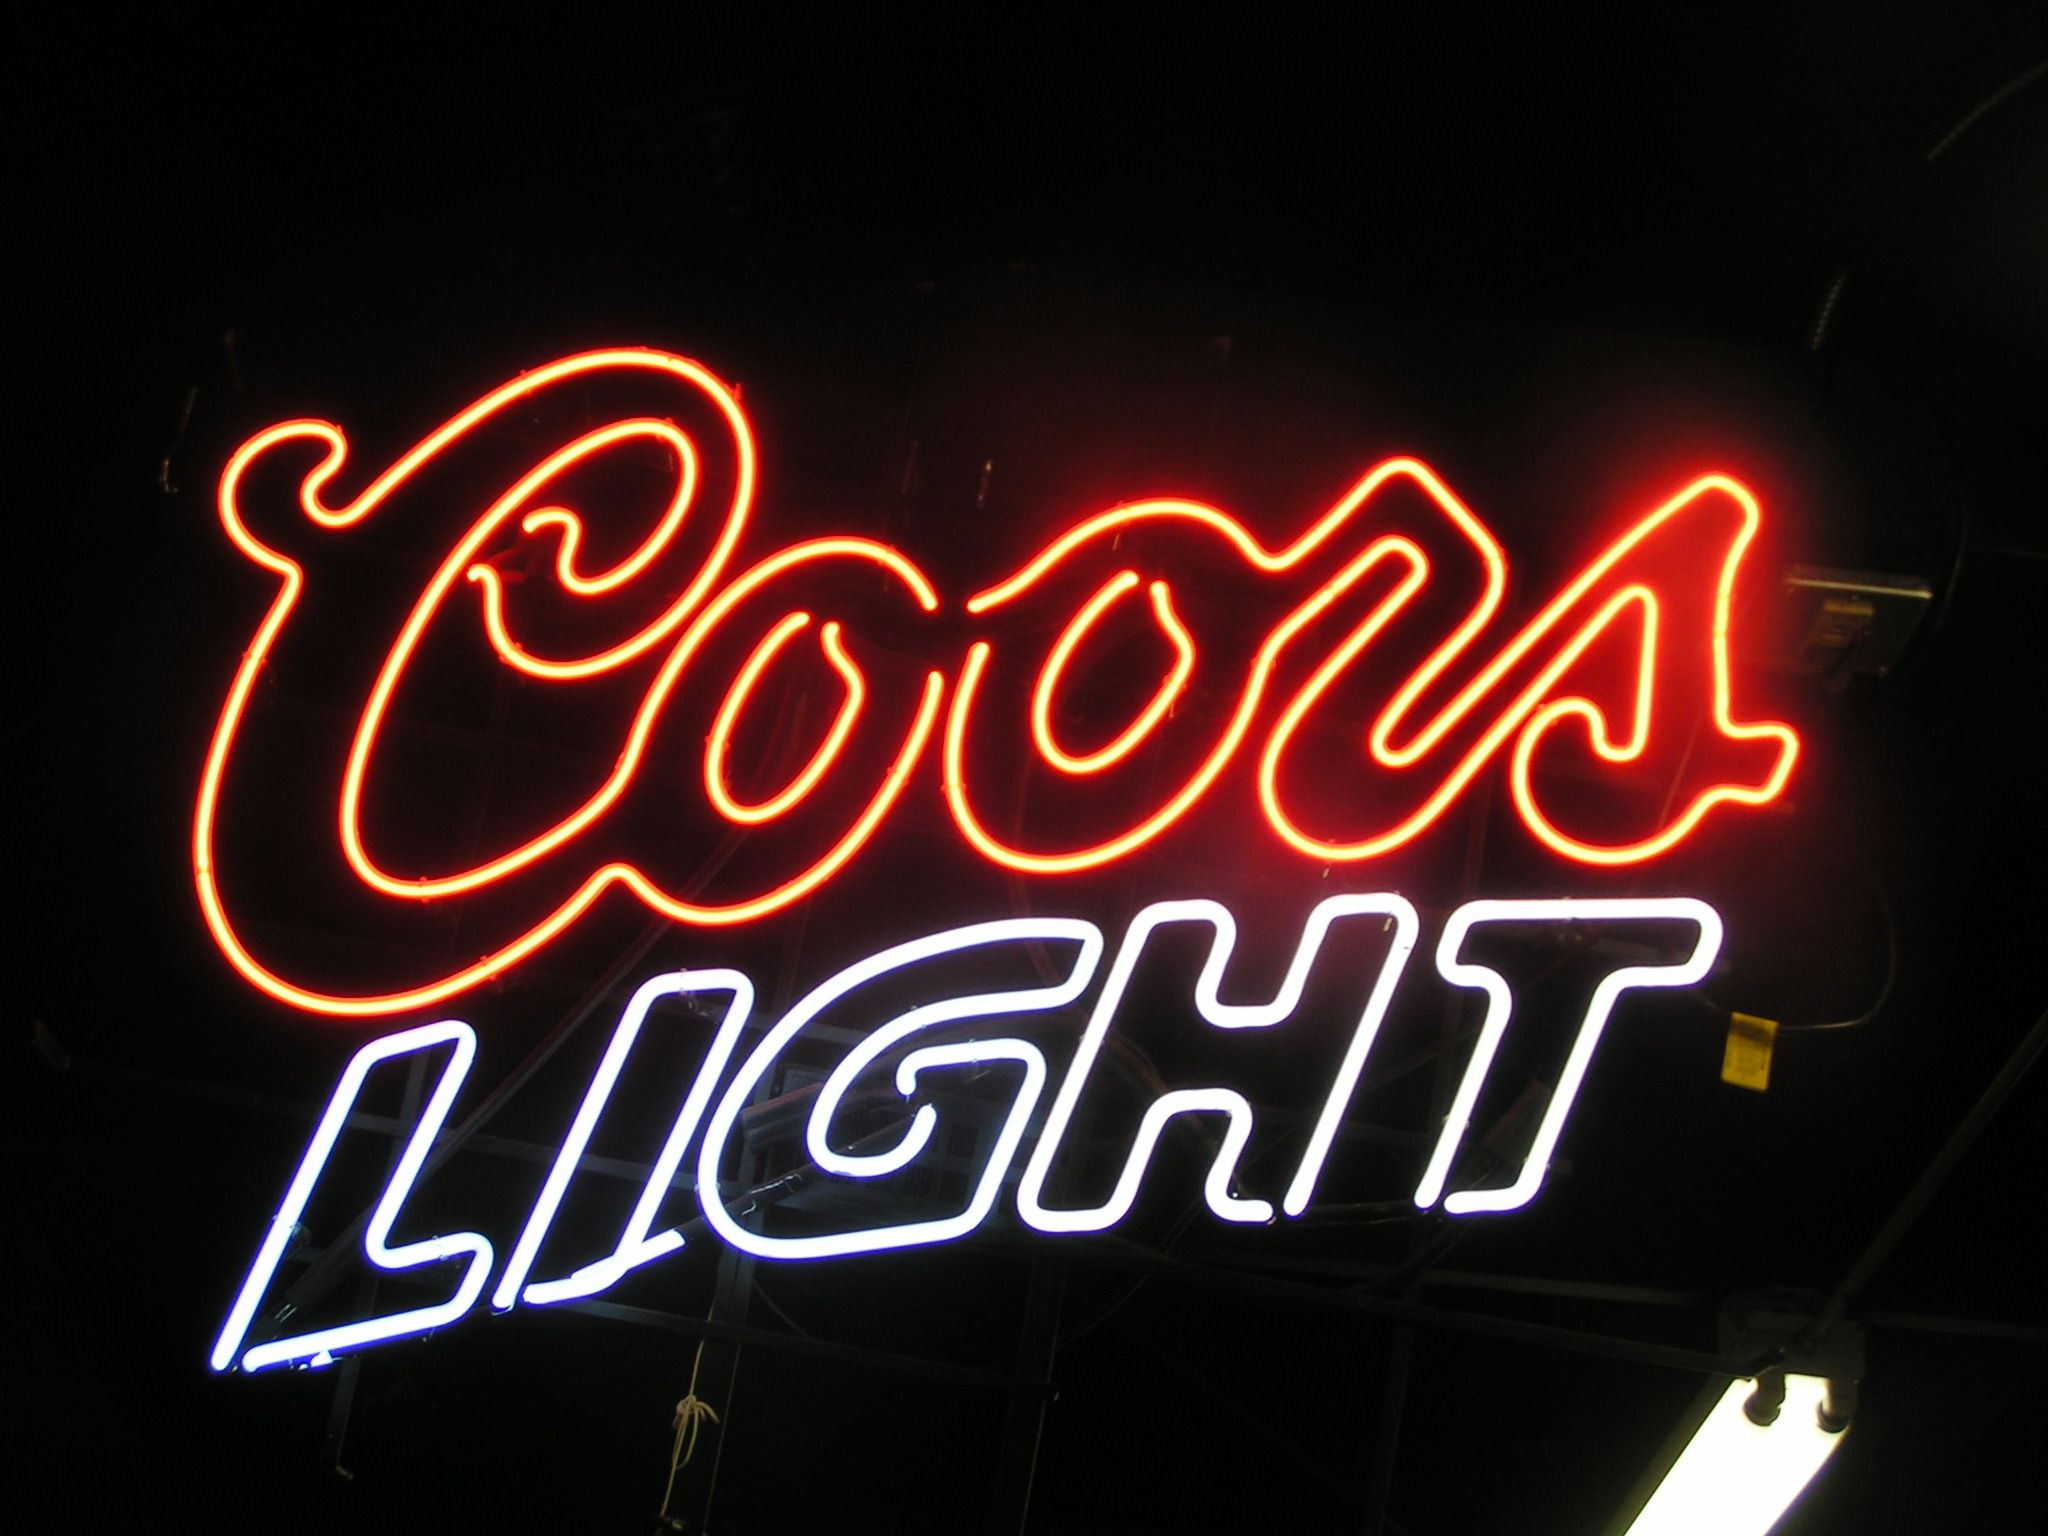 Coors Light Neon Beer Sign! Follow us on Facebook